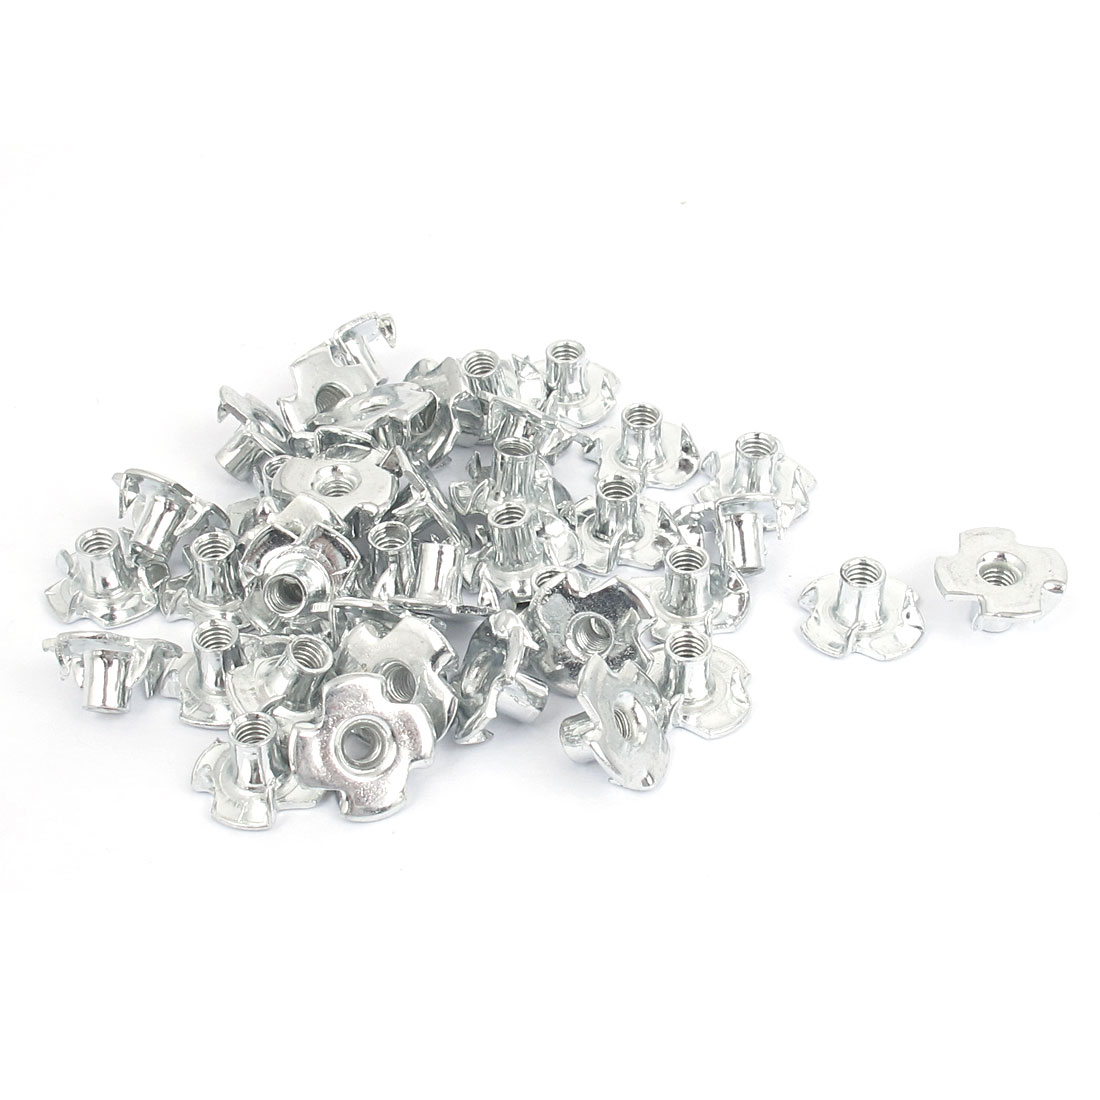 40 Pcs M4x0.7mm T Nut Zinc Plated 4 Prong Tee Nuts Fasteners